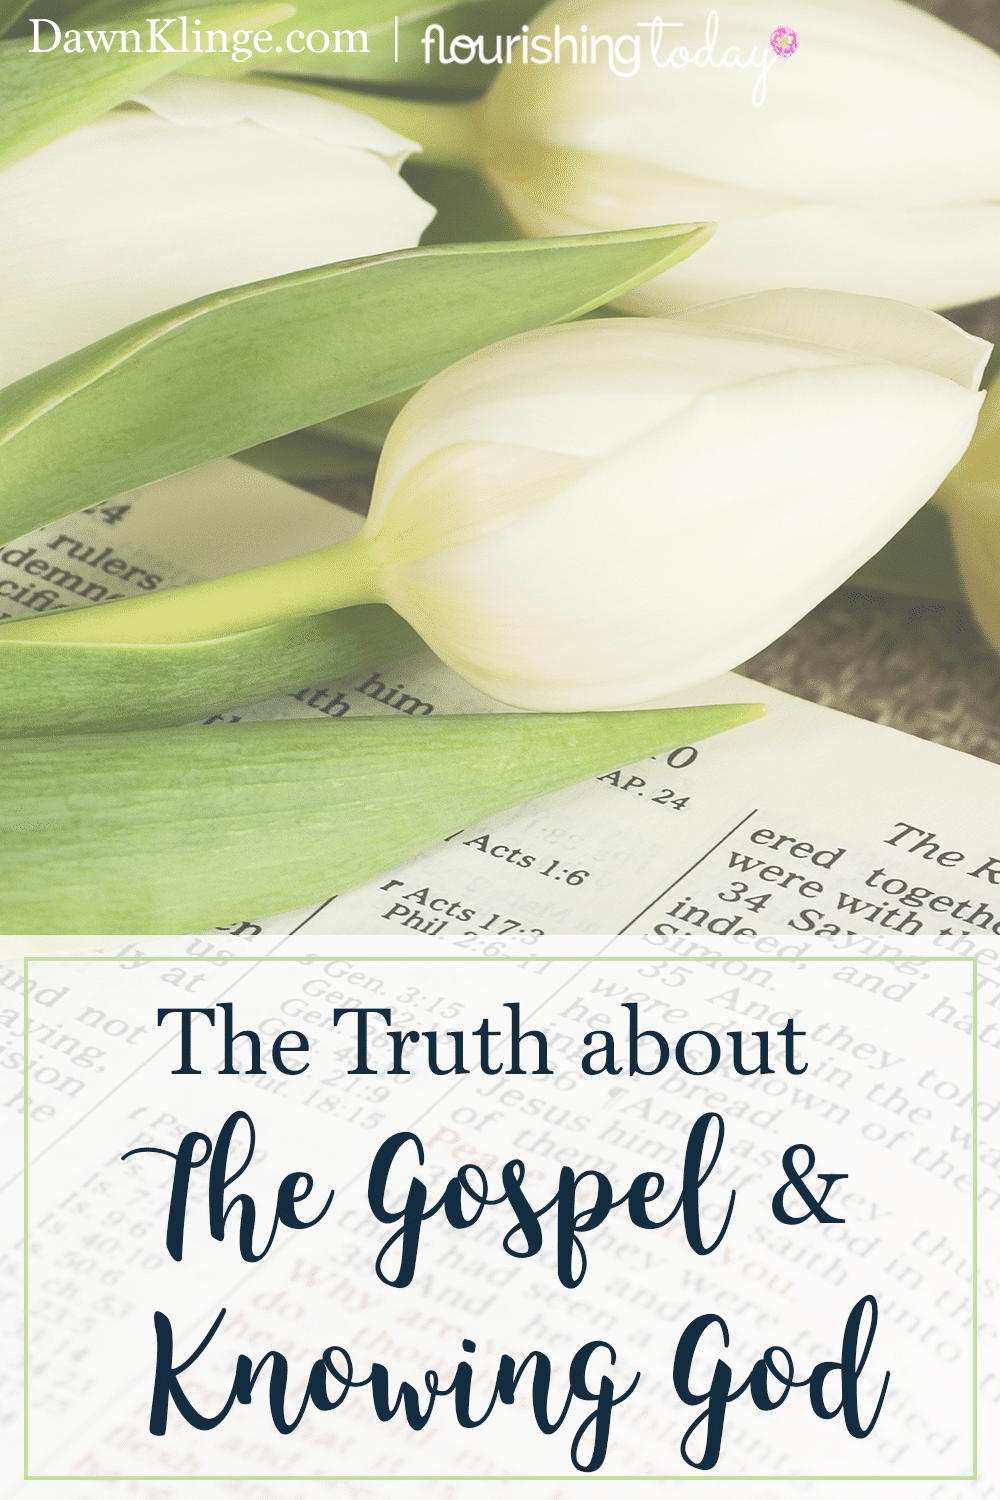 Do you want to know more about who God is? When we learn the truth about the gospel, we gain greater insight into who the Father is.